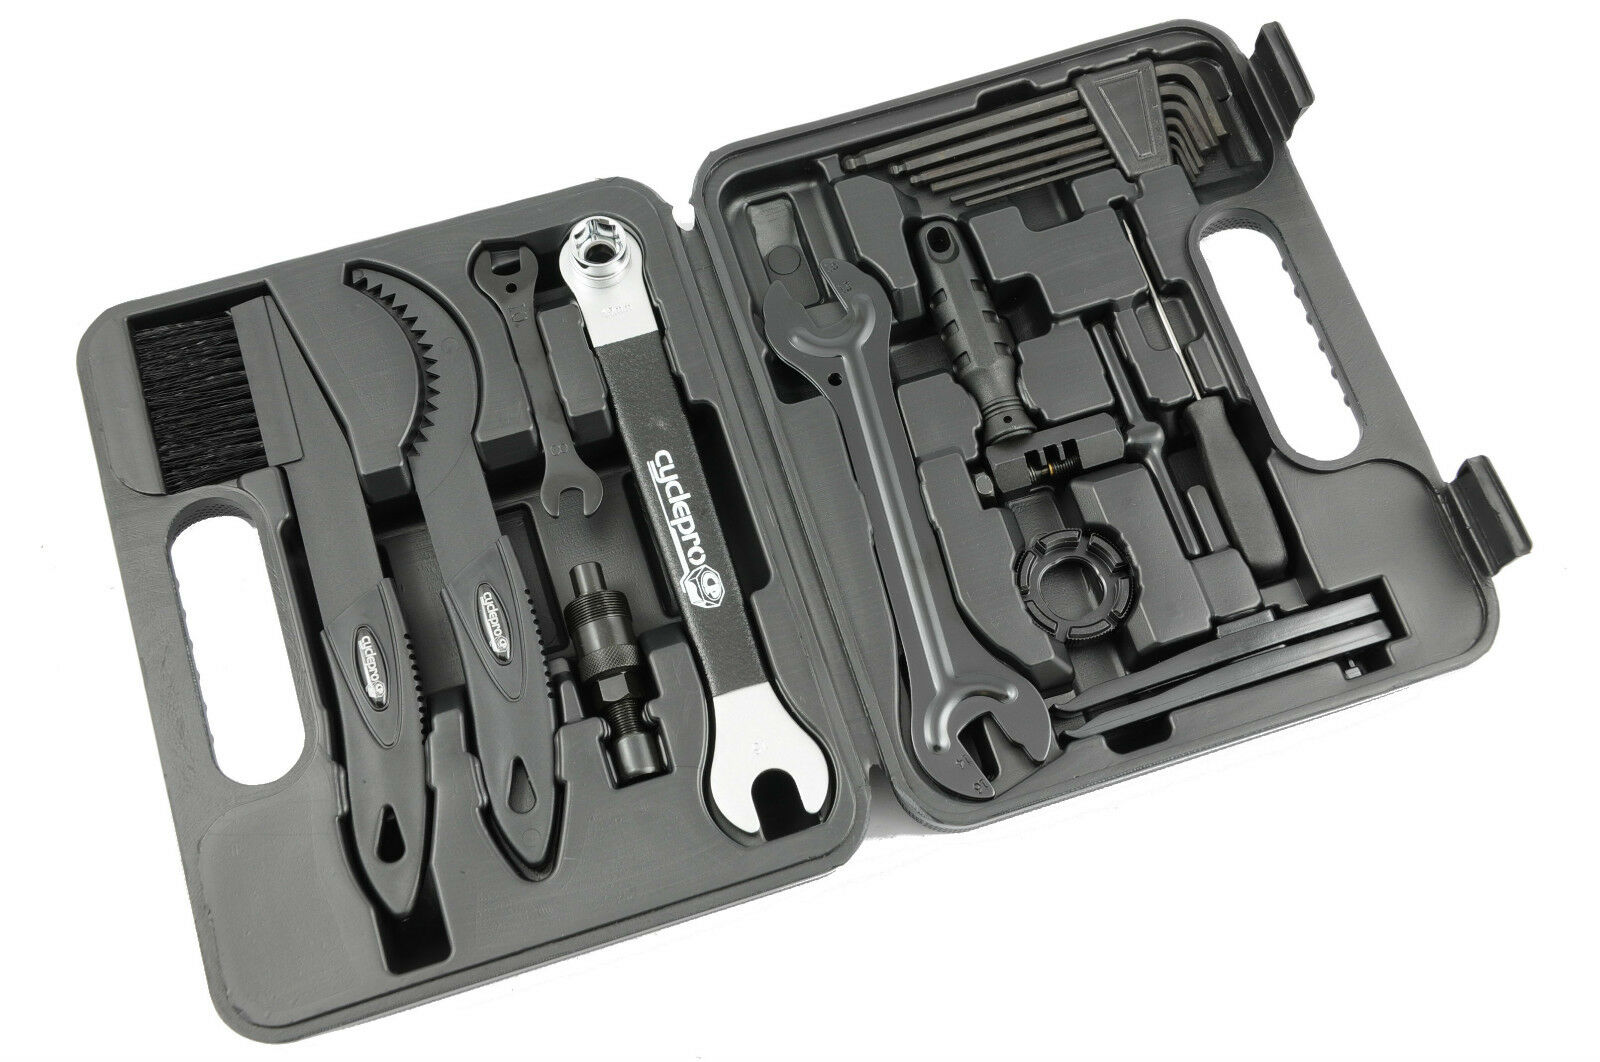 CYCLEPRO 19  PIECE CYCLE TOOL KIT FOR BIKE ENTHUSIASTS & MECHANICS  off  big discount